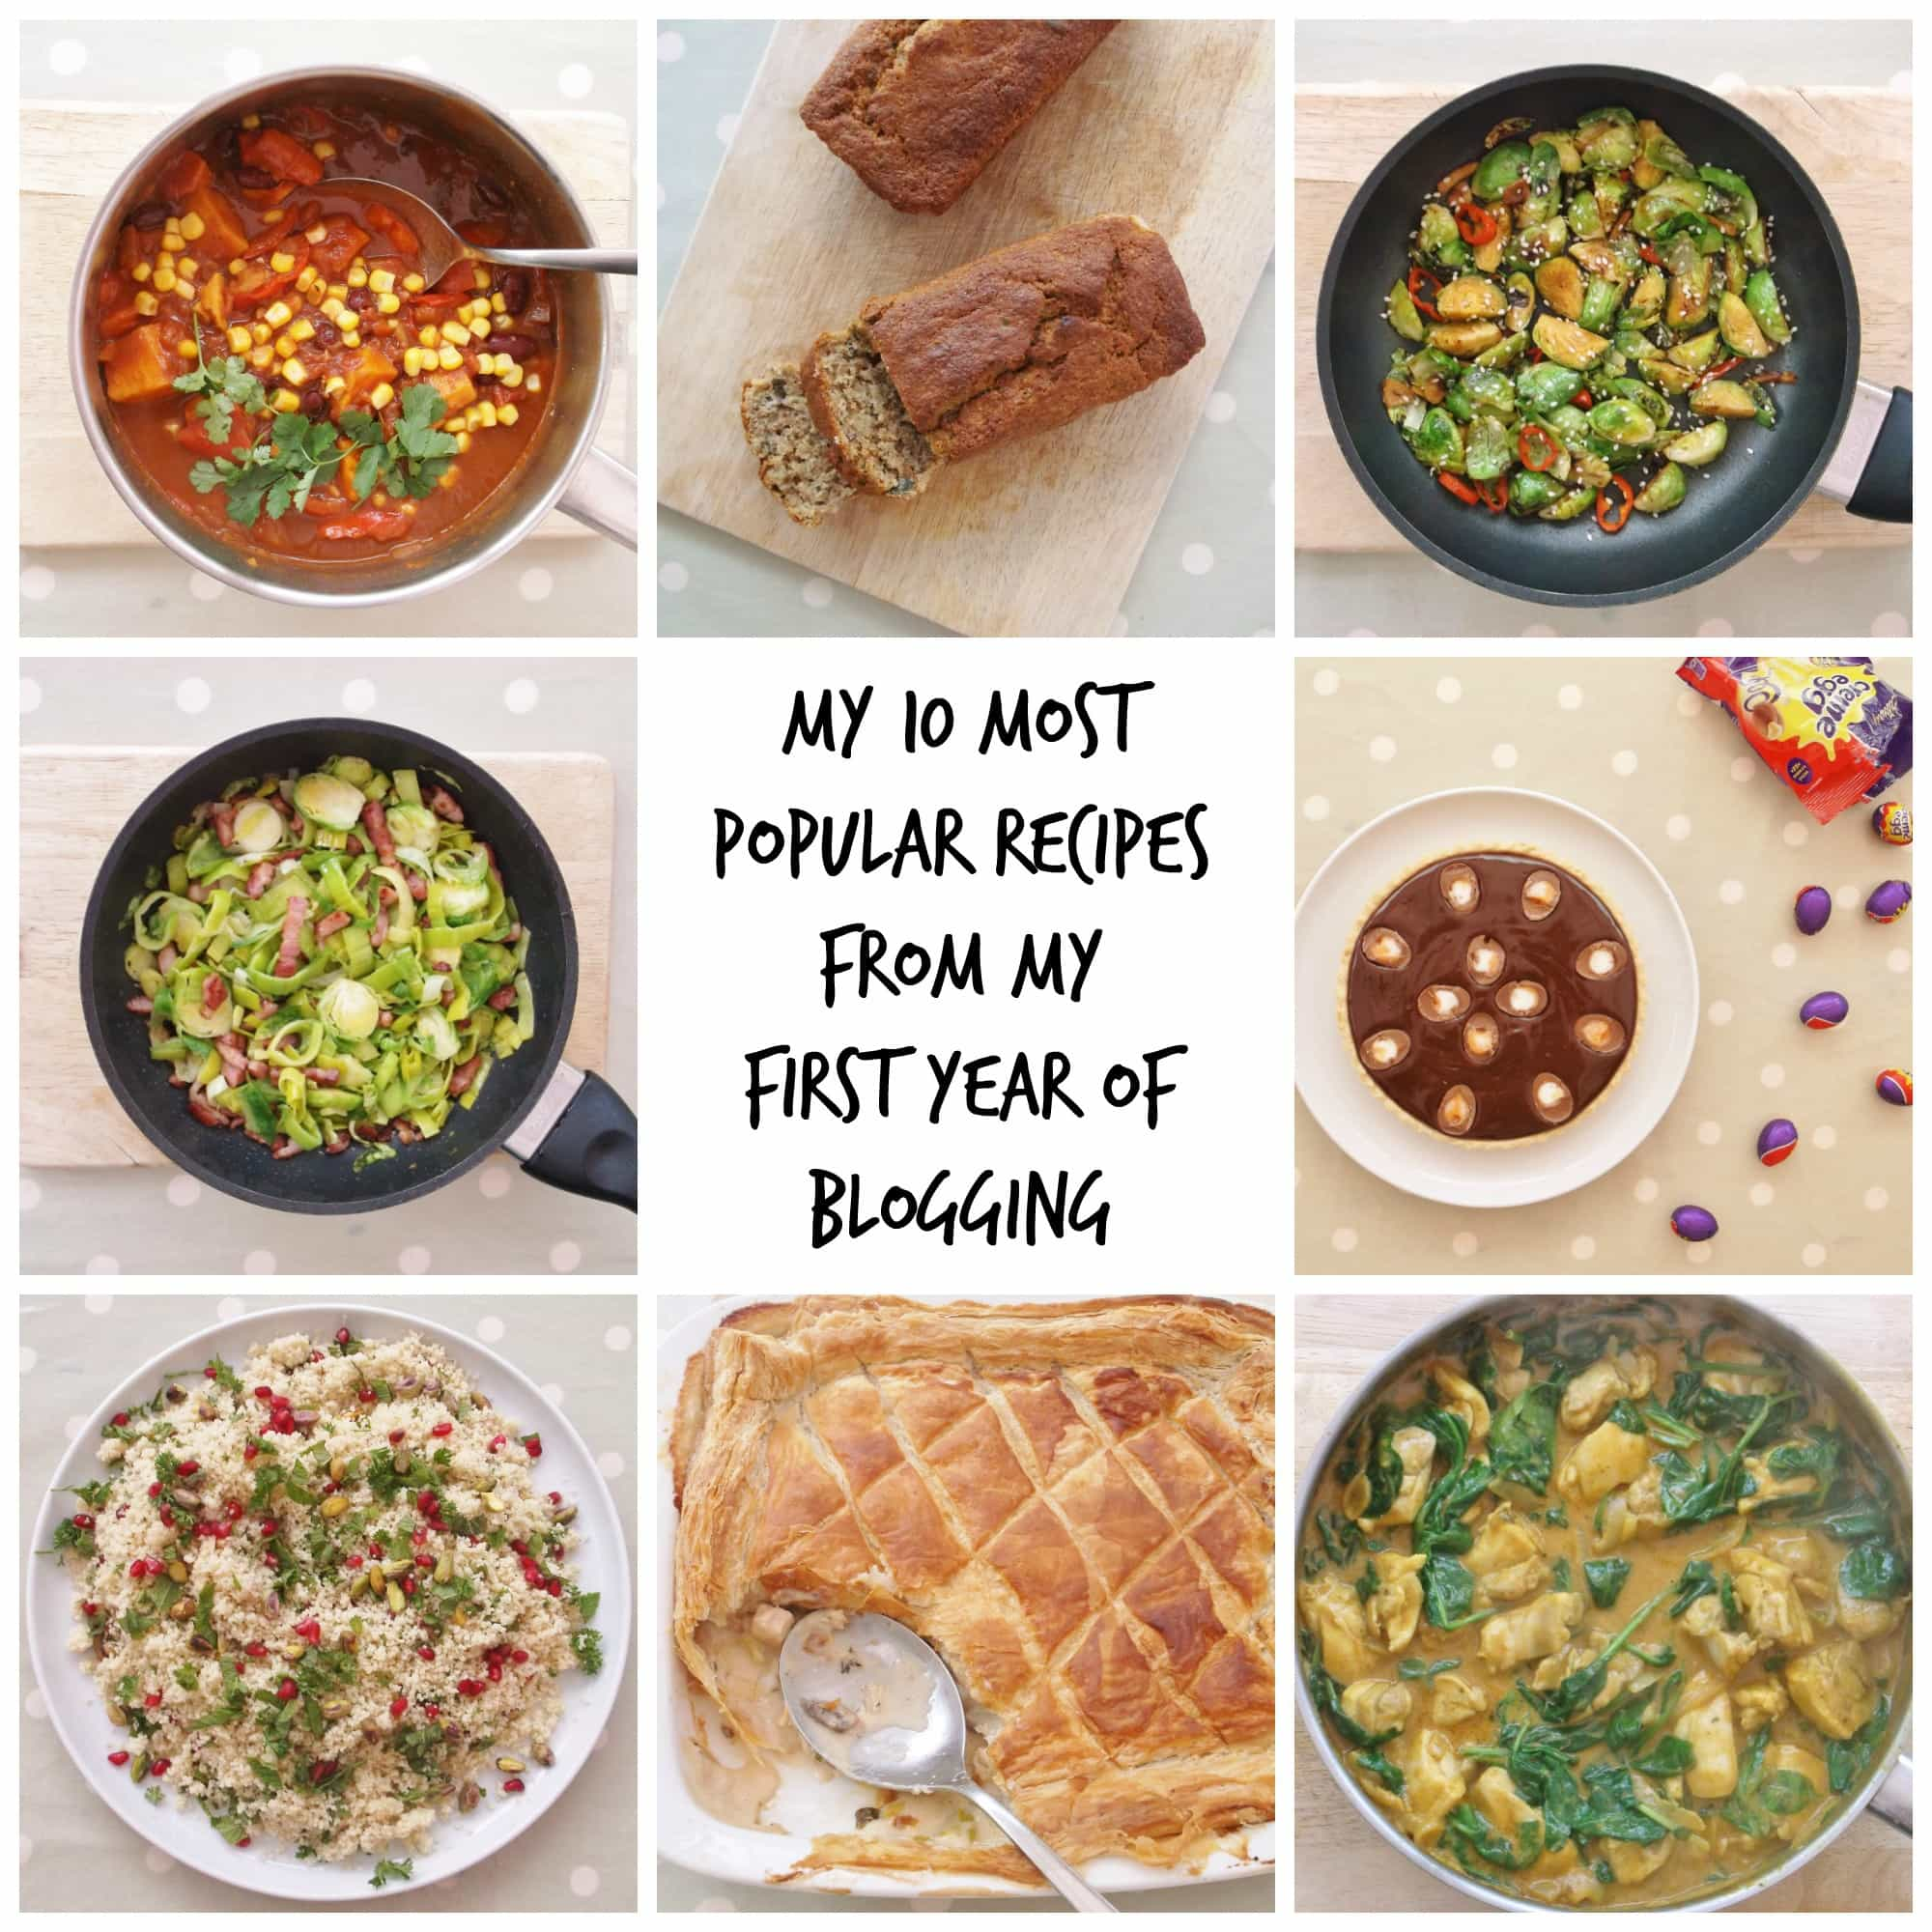 My 10 most popular recipes from my first year of blogging